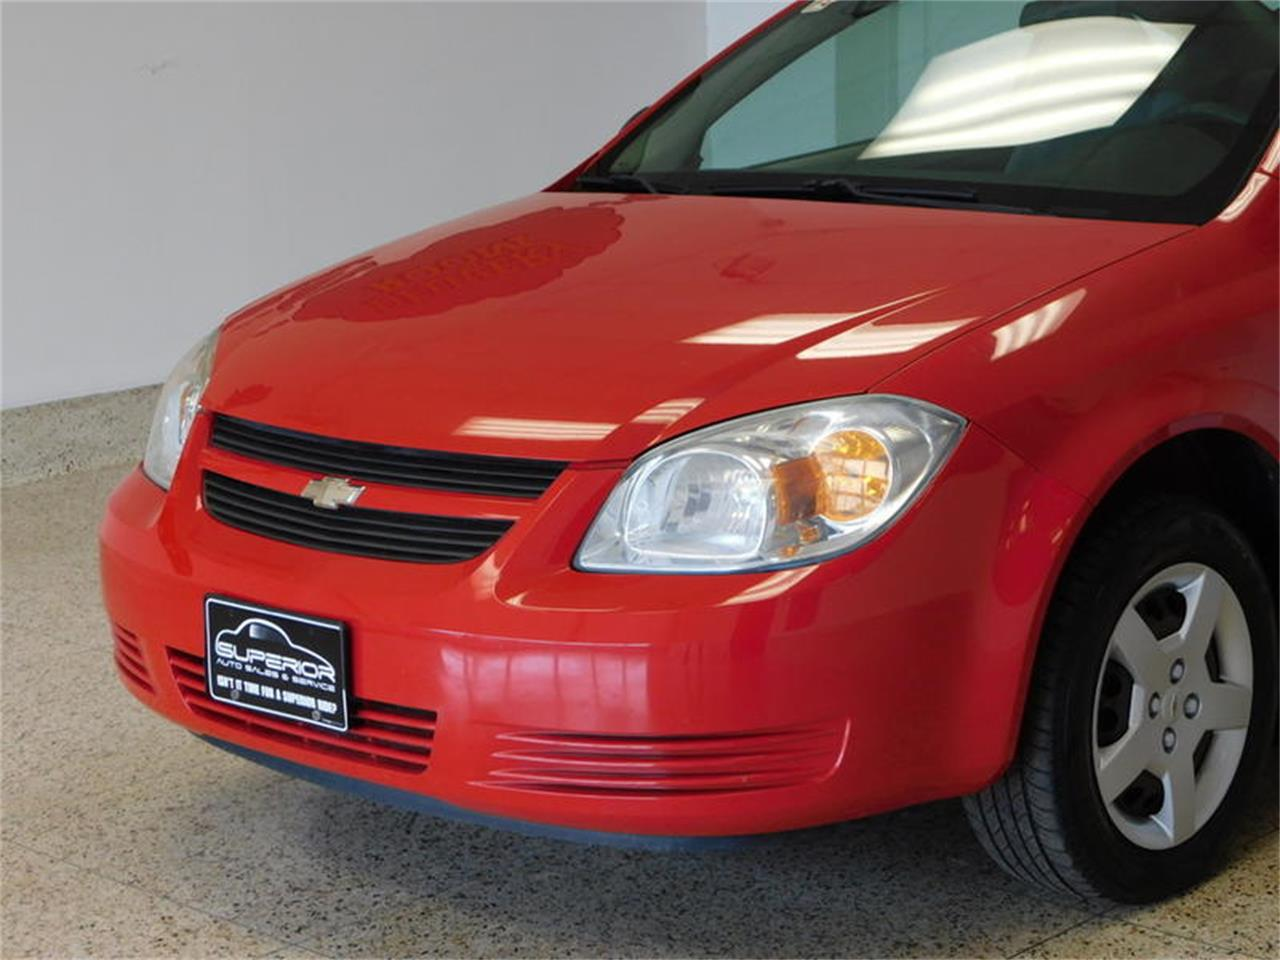 Large Picture of 2007 Chevrolet Cobalt located in Hamburg New York - QEMW